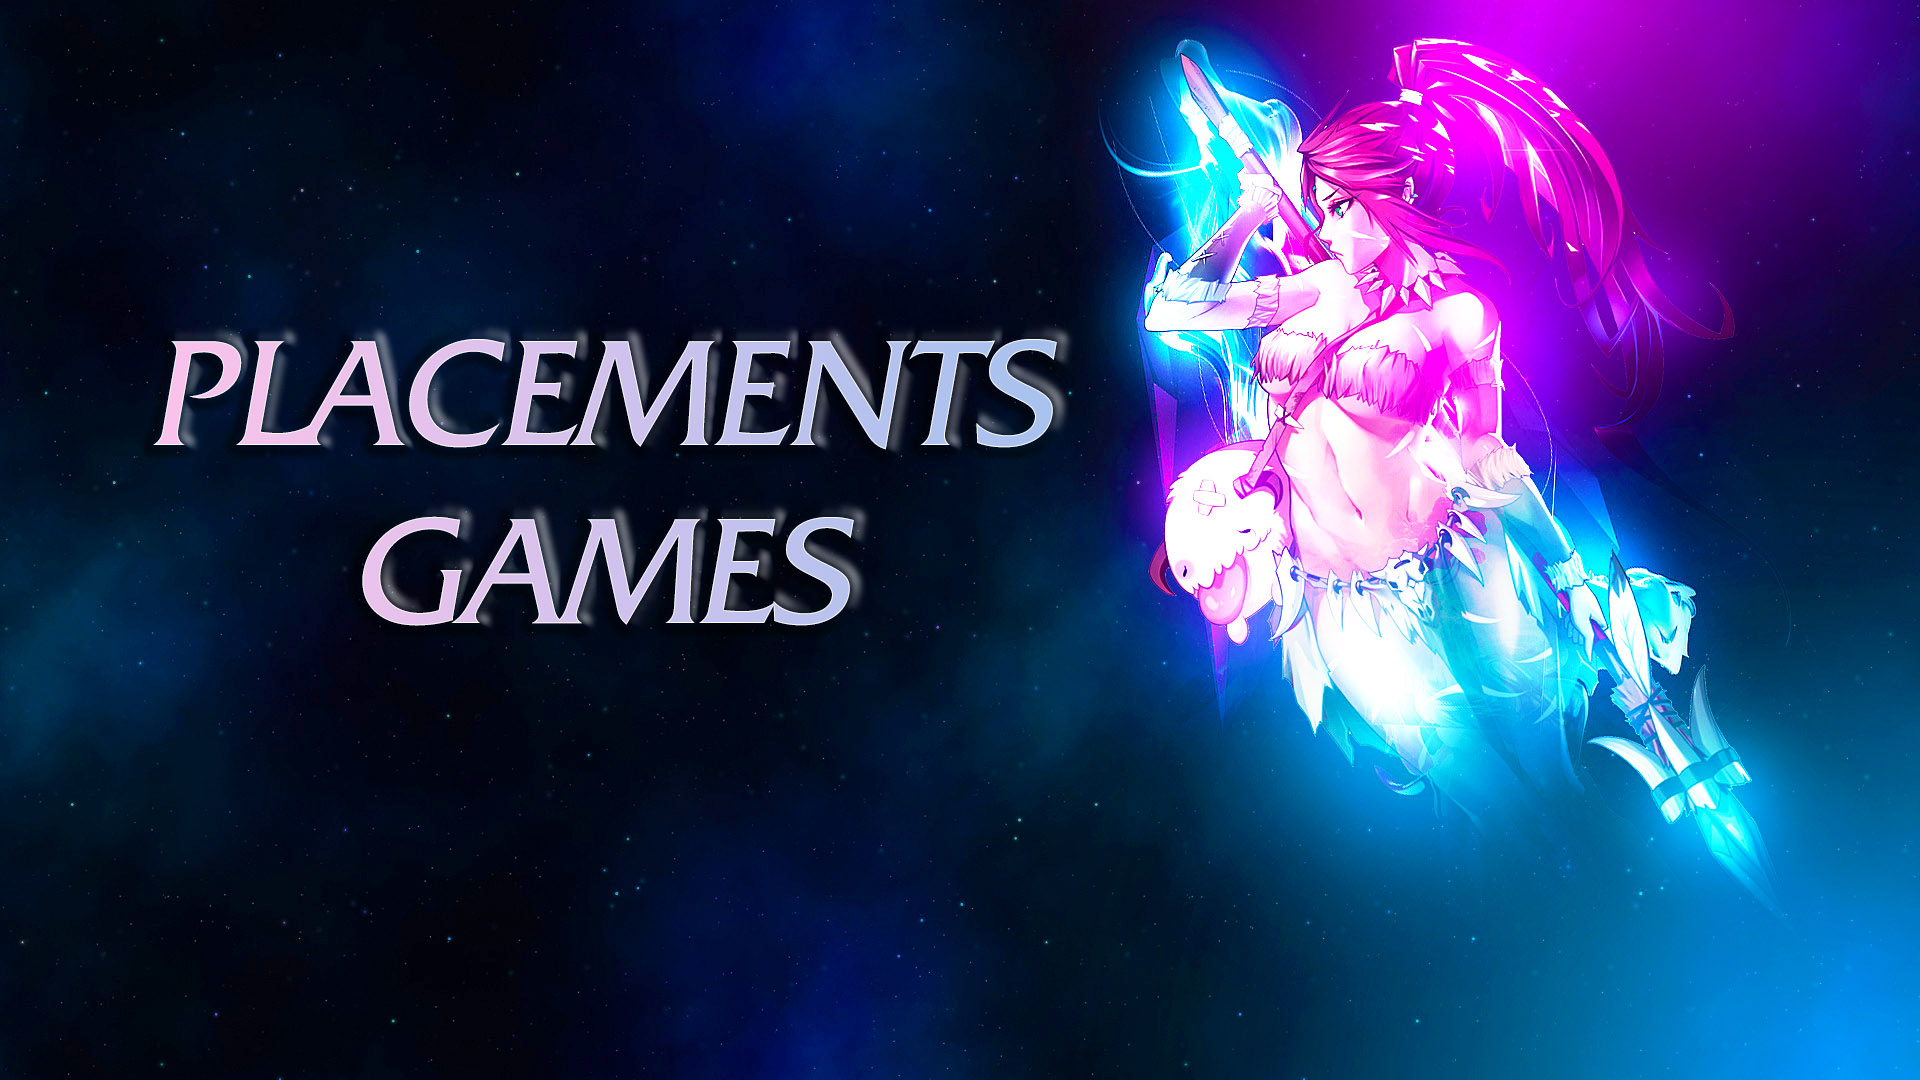 PLACEMENT GAMES (PLATINUM) GBD - e2p.com